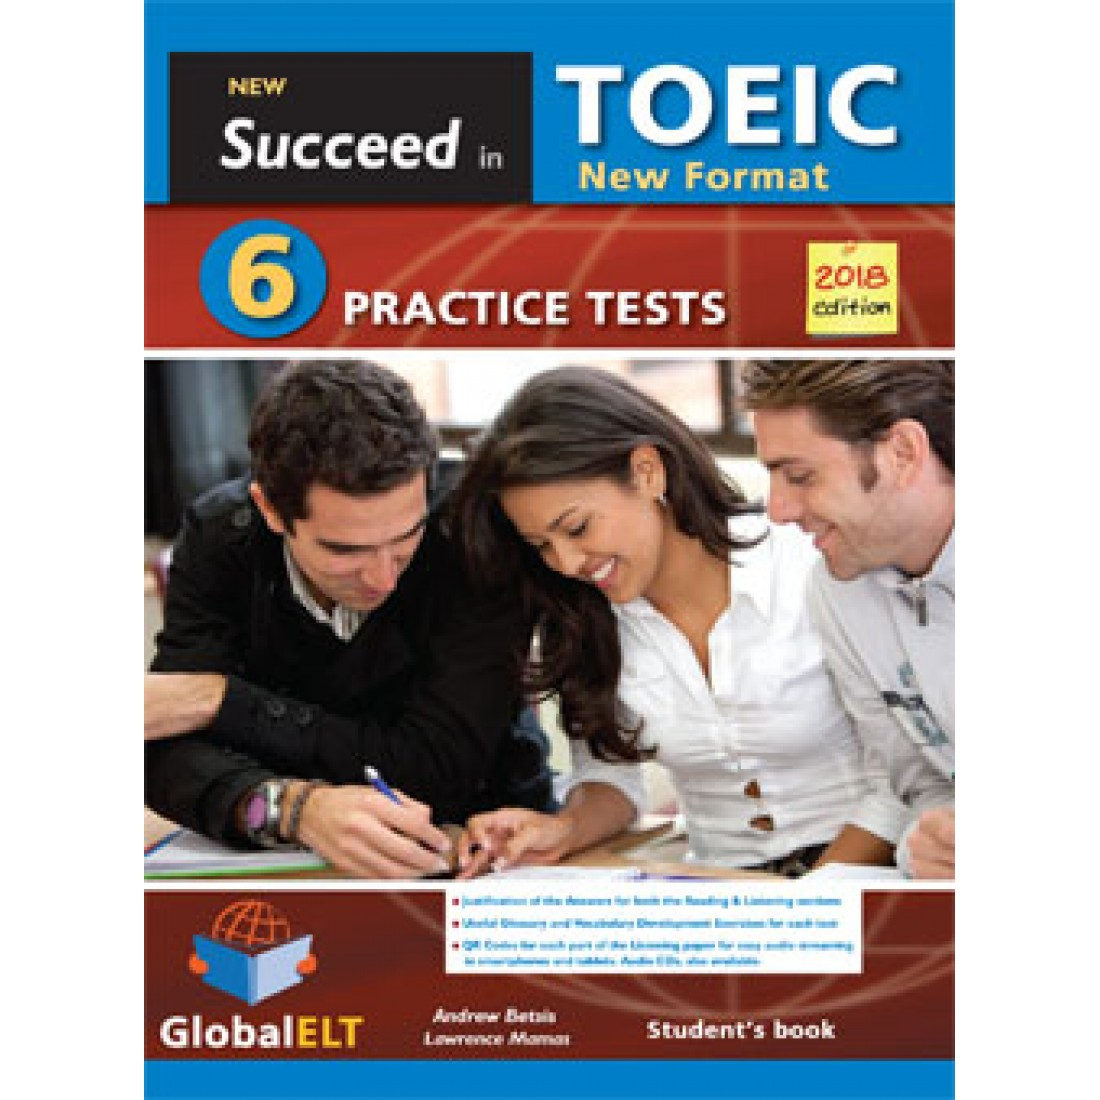 Succeed in the NEW TOEIC - 2018 Format REVISED EDITION 6 Practice Tests  Student's Book